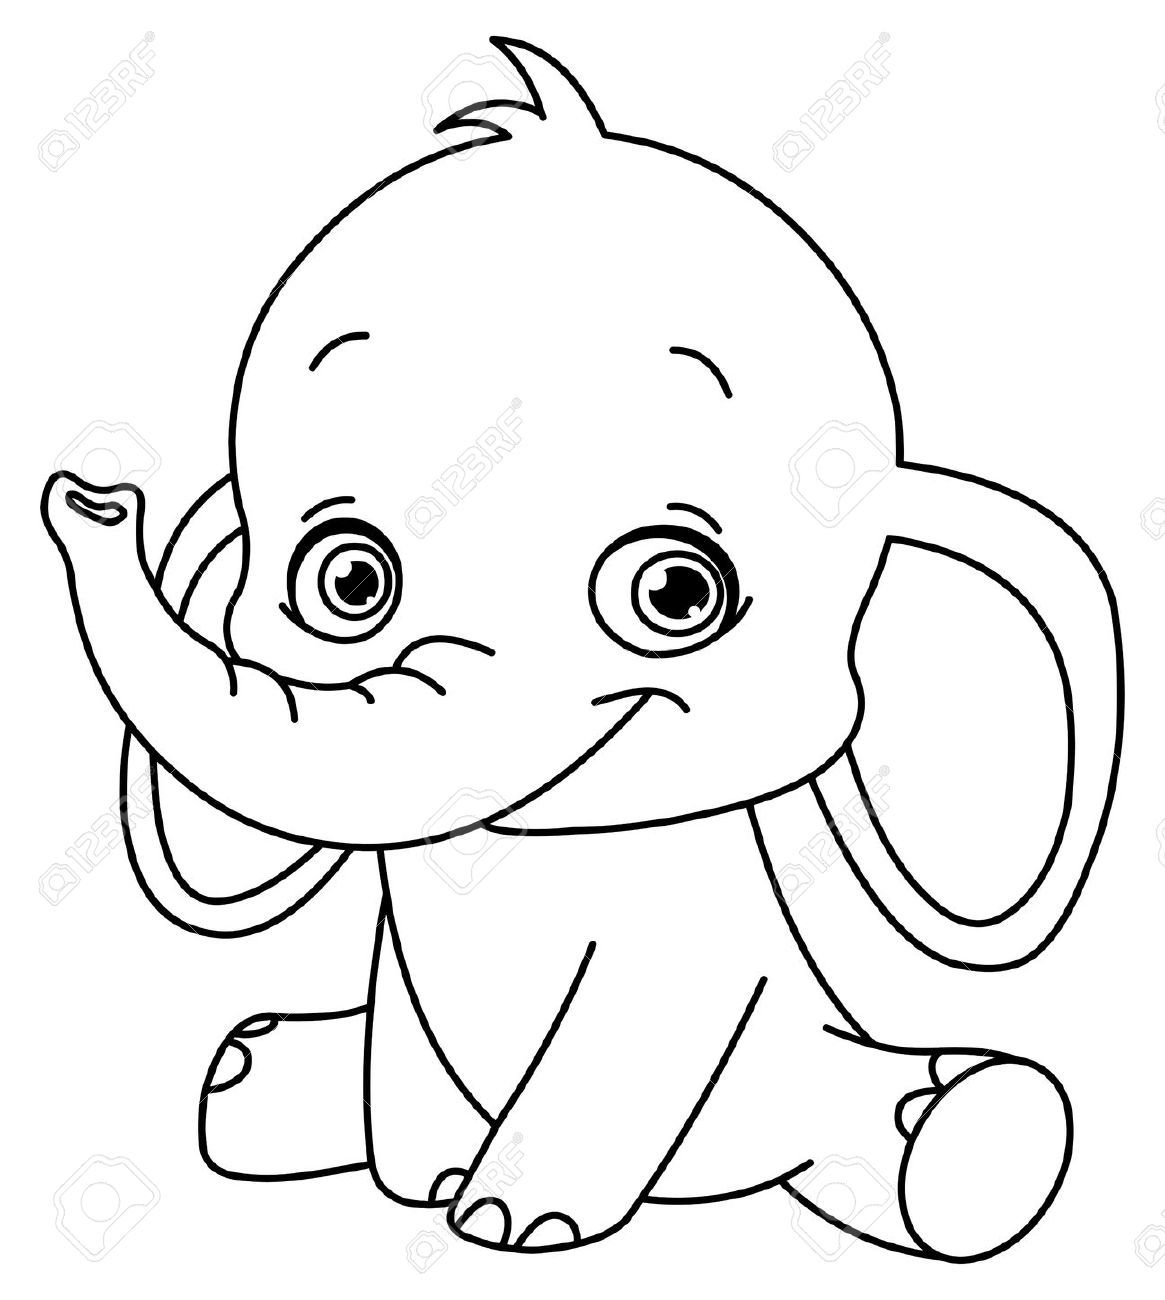 baby animal outlines cartoon drawing of elephant google search elephant outlines animal baby